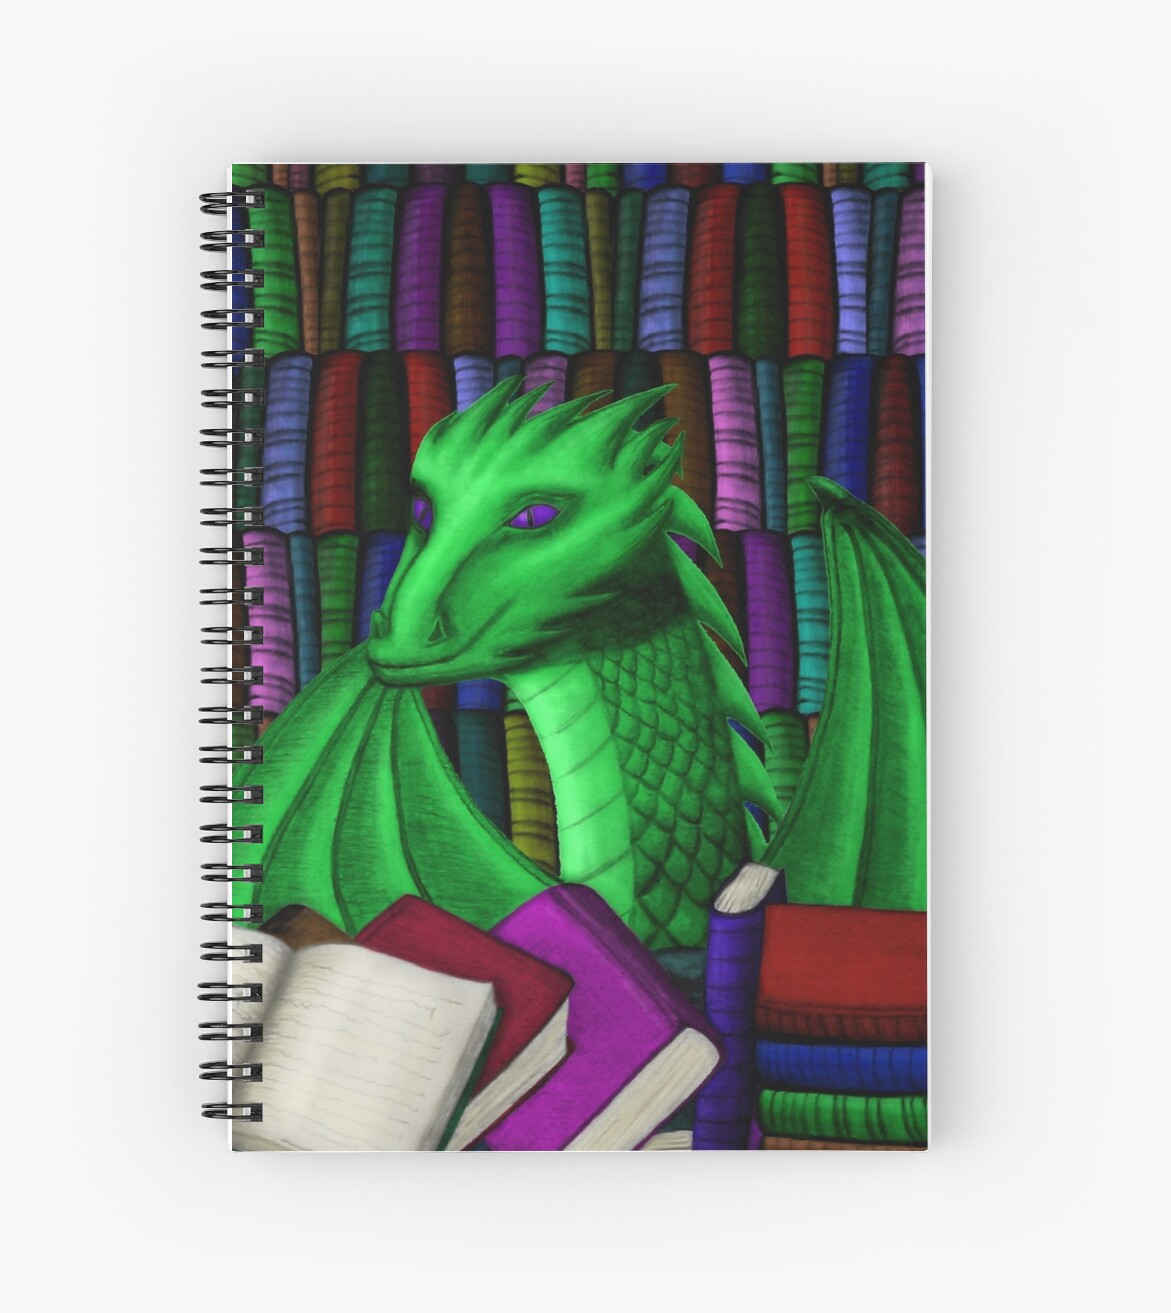 Green Dragon with Book Hoard - no glasses by shaneisadragon